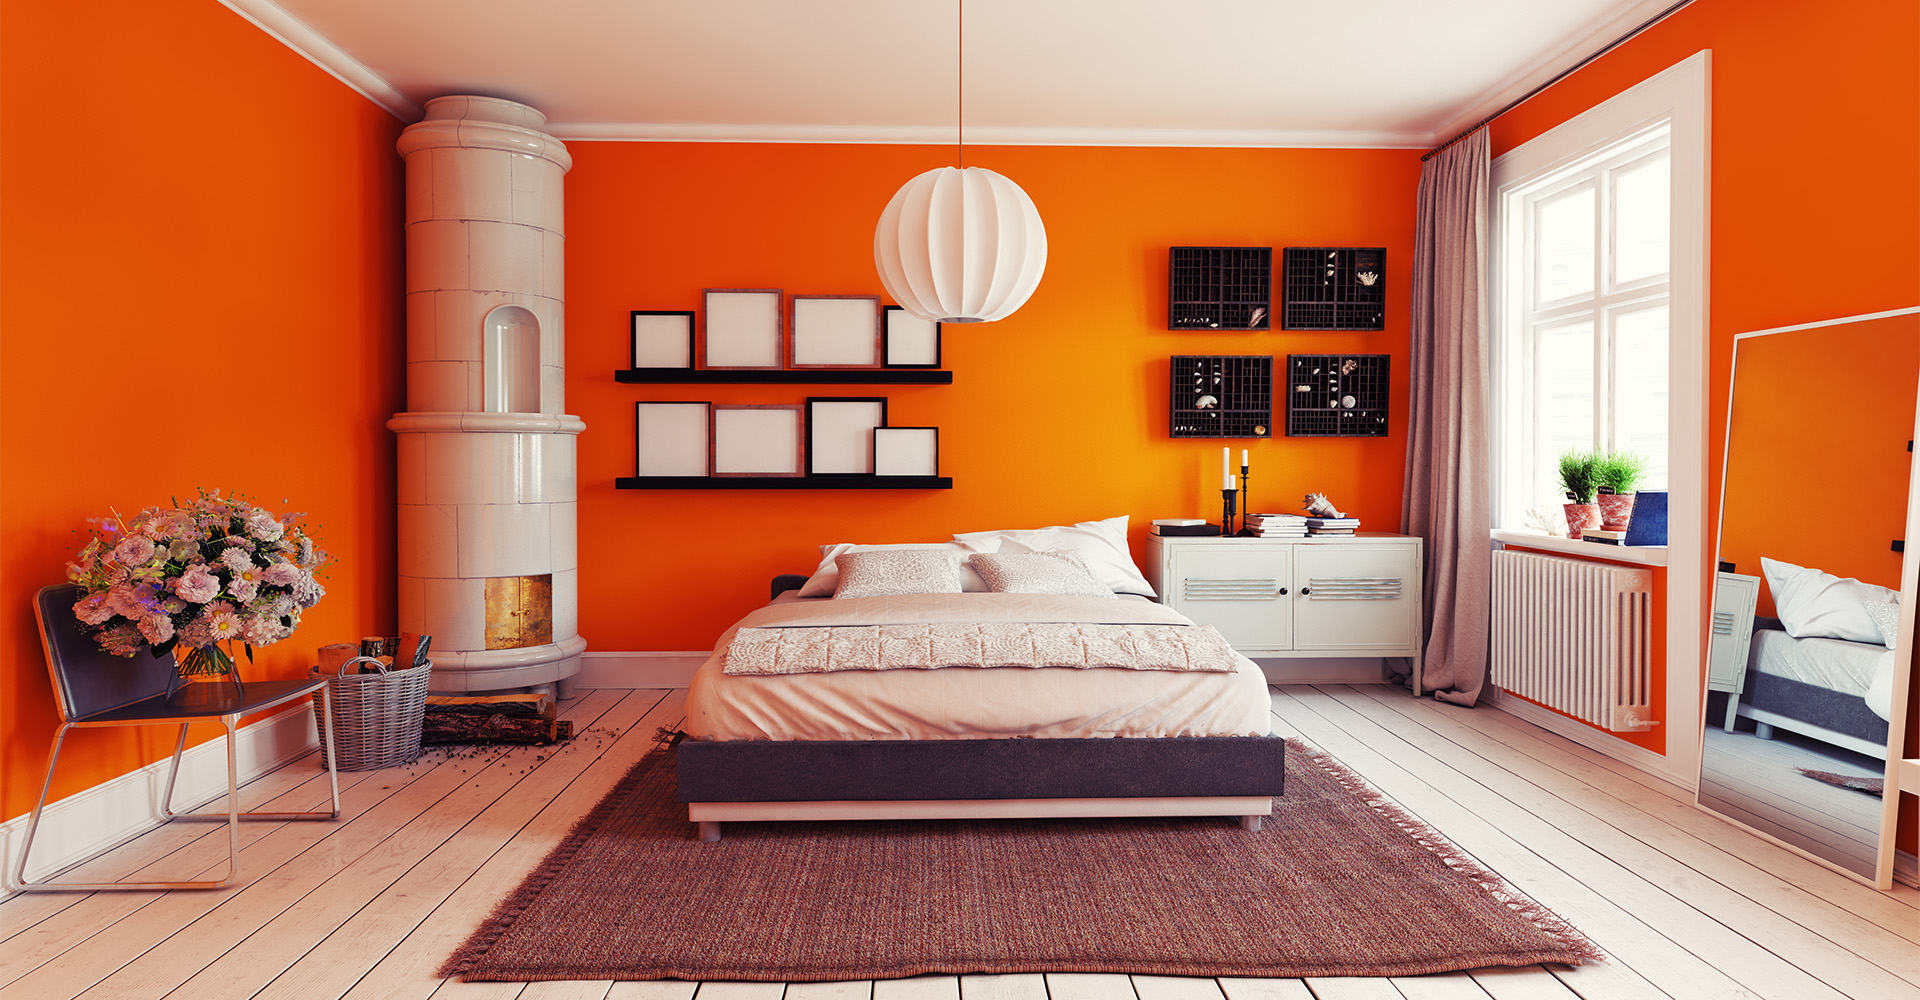 Bedroom Interior Designers in Bangalore  Bedroom Designs  Decorpot